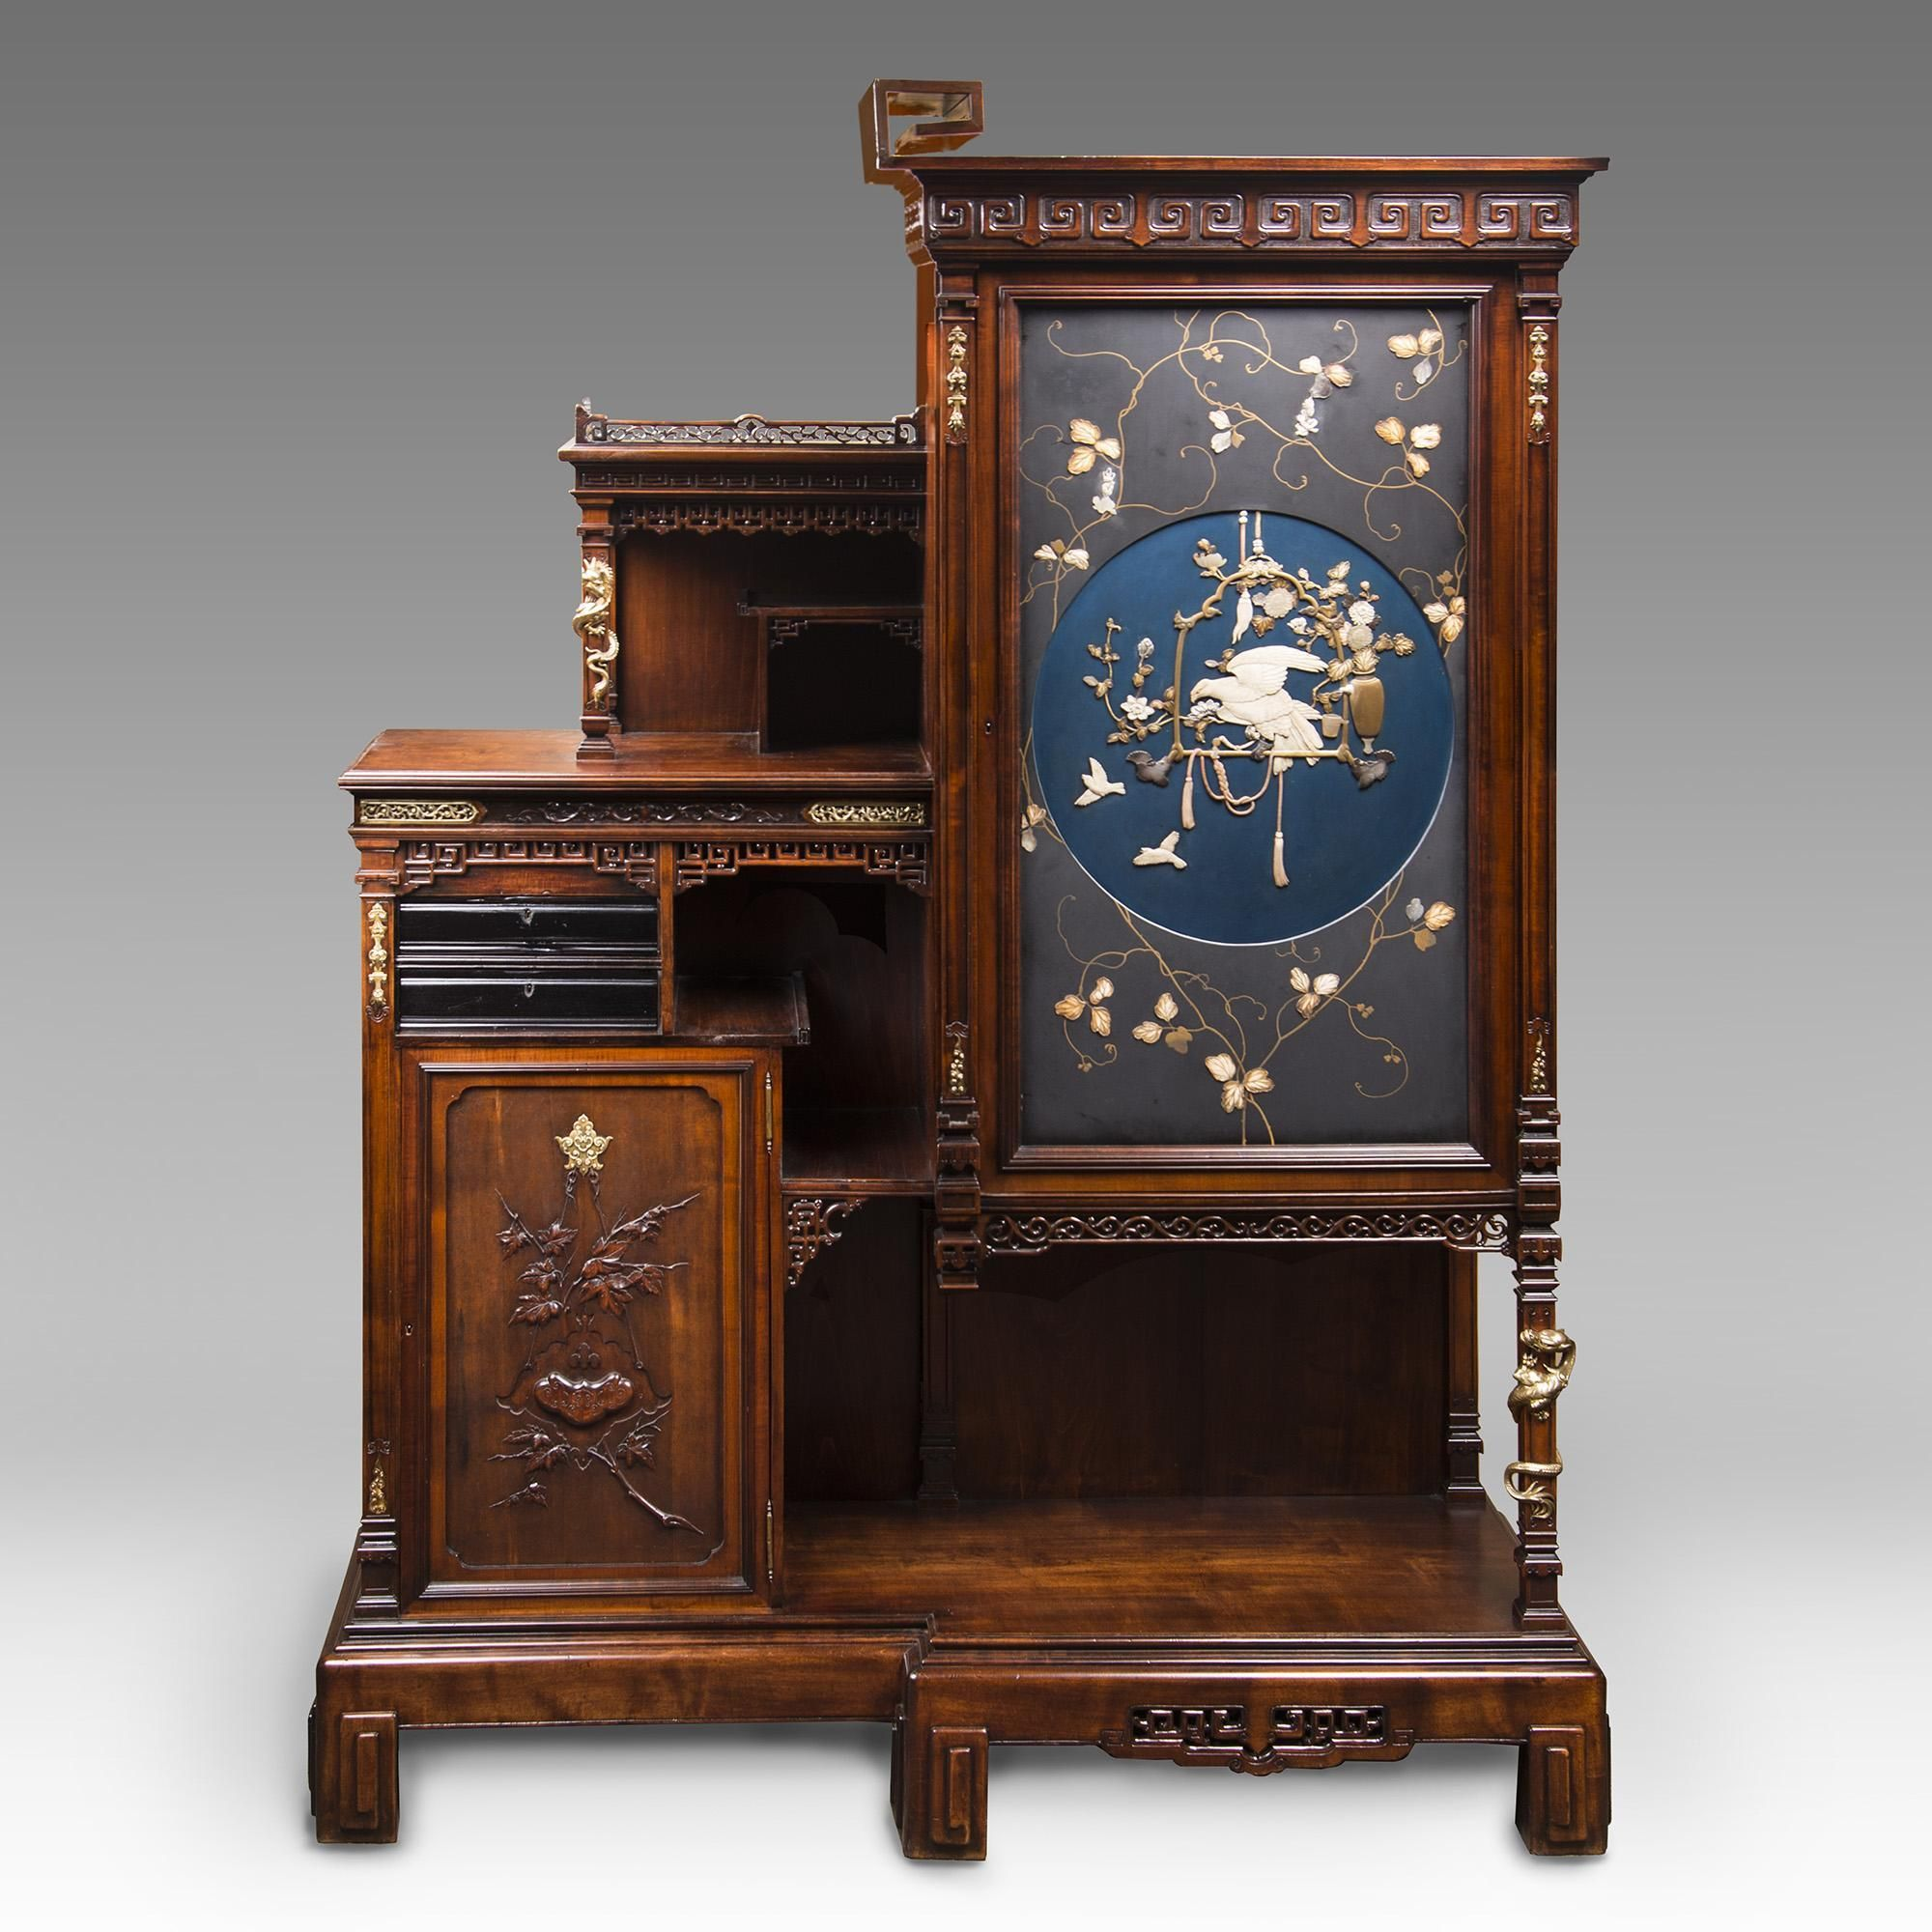 Meubles Asiatiques Anciens 1890 S Rare French Gabriel Viardot Cabinet In The Japonaise Manner